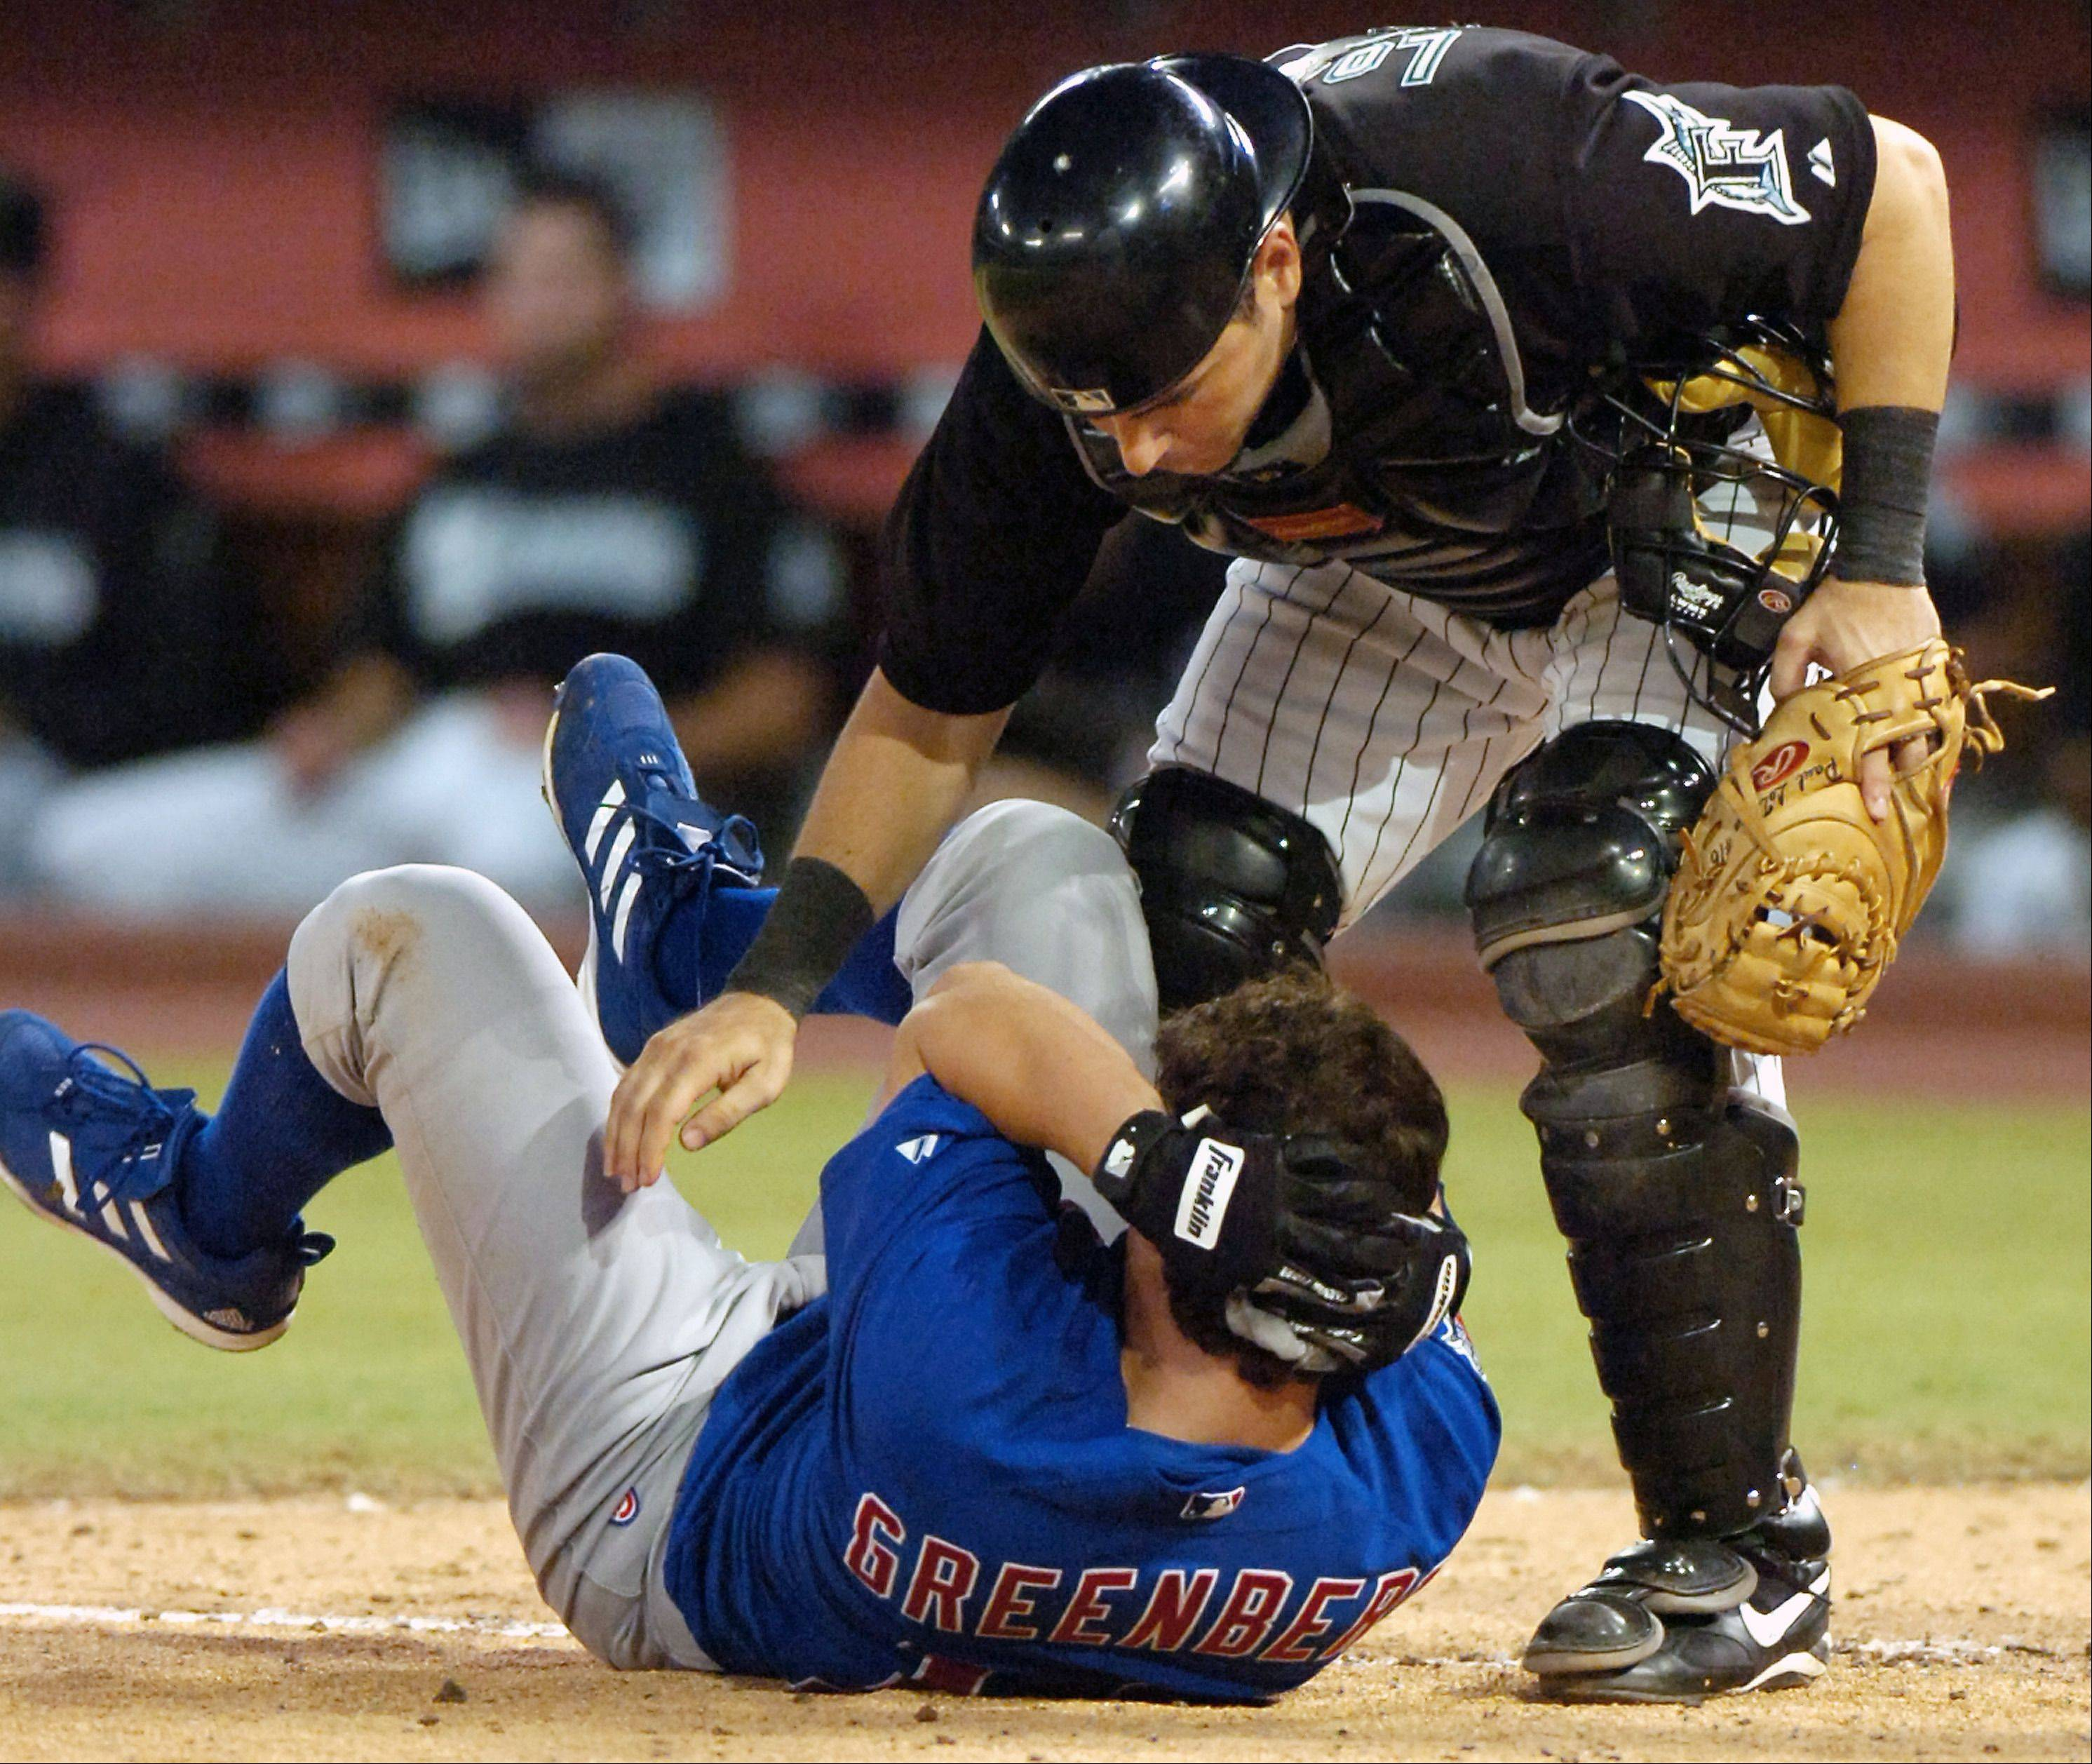 Florida Marlins catcher Paul Lo Duca rushes over to check on Chicago Cubs rookie Adam Greenberg after Greenberg was hit in the helmet by the first pitch he faced in the major leagues, from Florida Marlins relief pitcher Valerio Do Los Santos during the ninth inning, July 9, 2005, in Miami. The Cubs won 8-2.